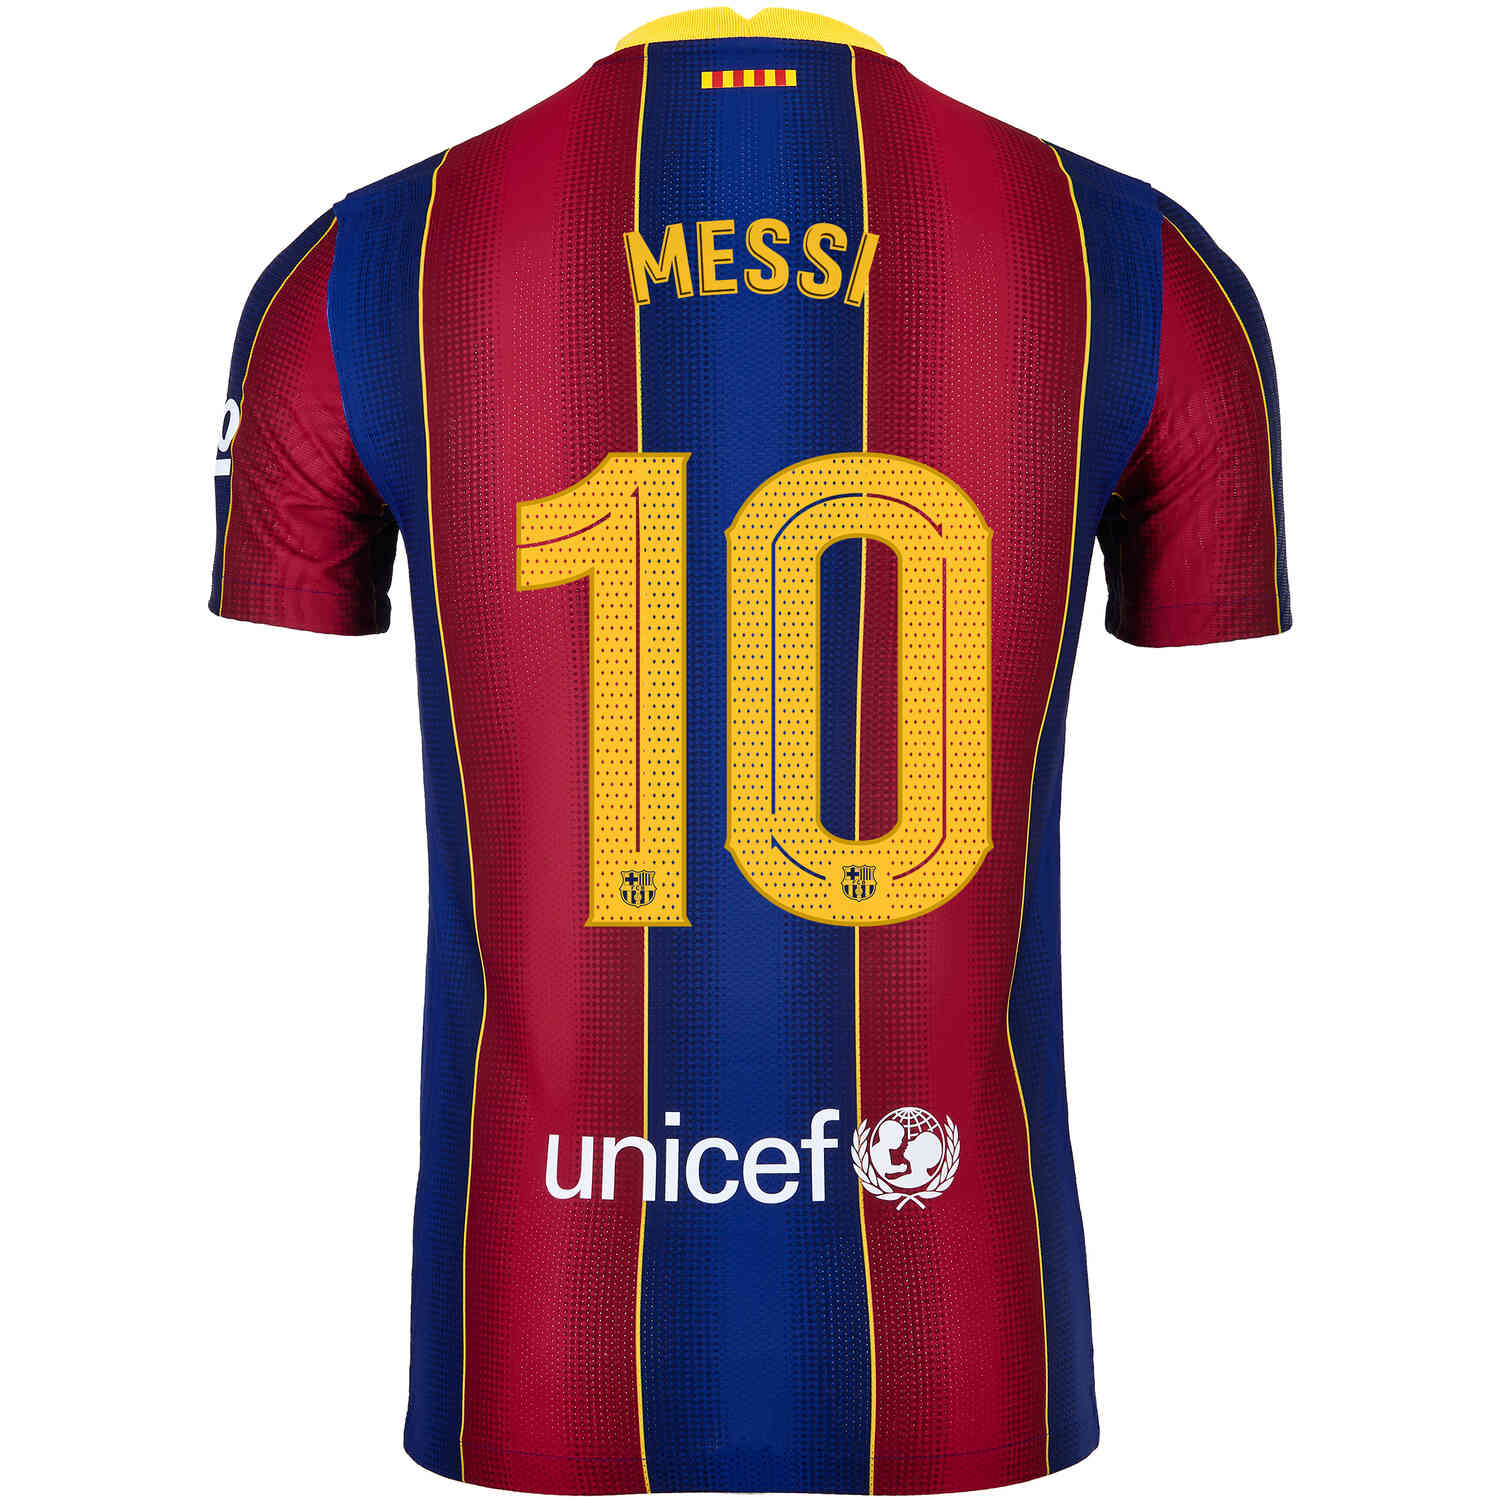 2020/21 Nike Lionel Messi Barcelona Home Match Jersey ...